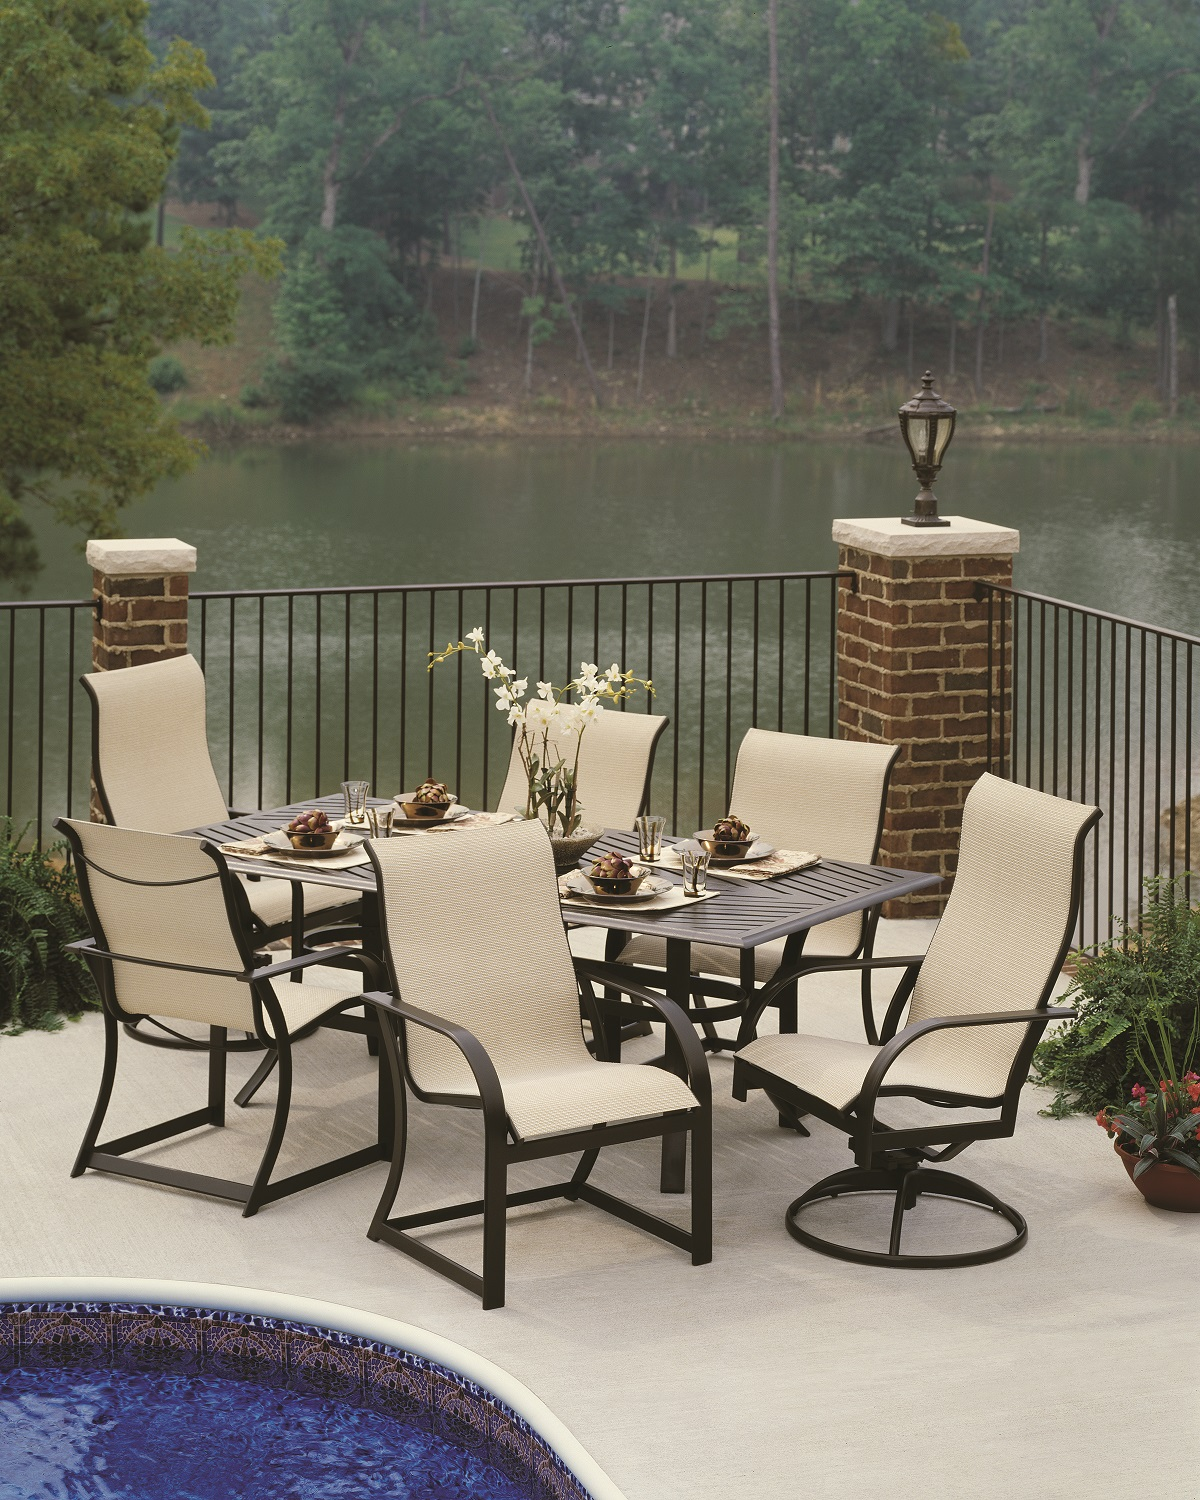 aluminum patio furniture touch up paint photo - 2